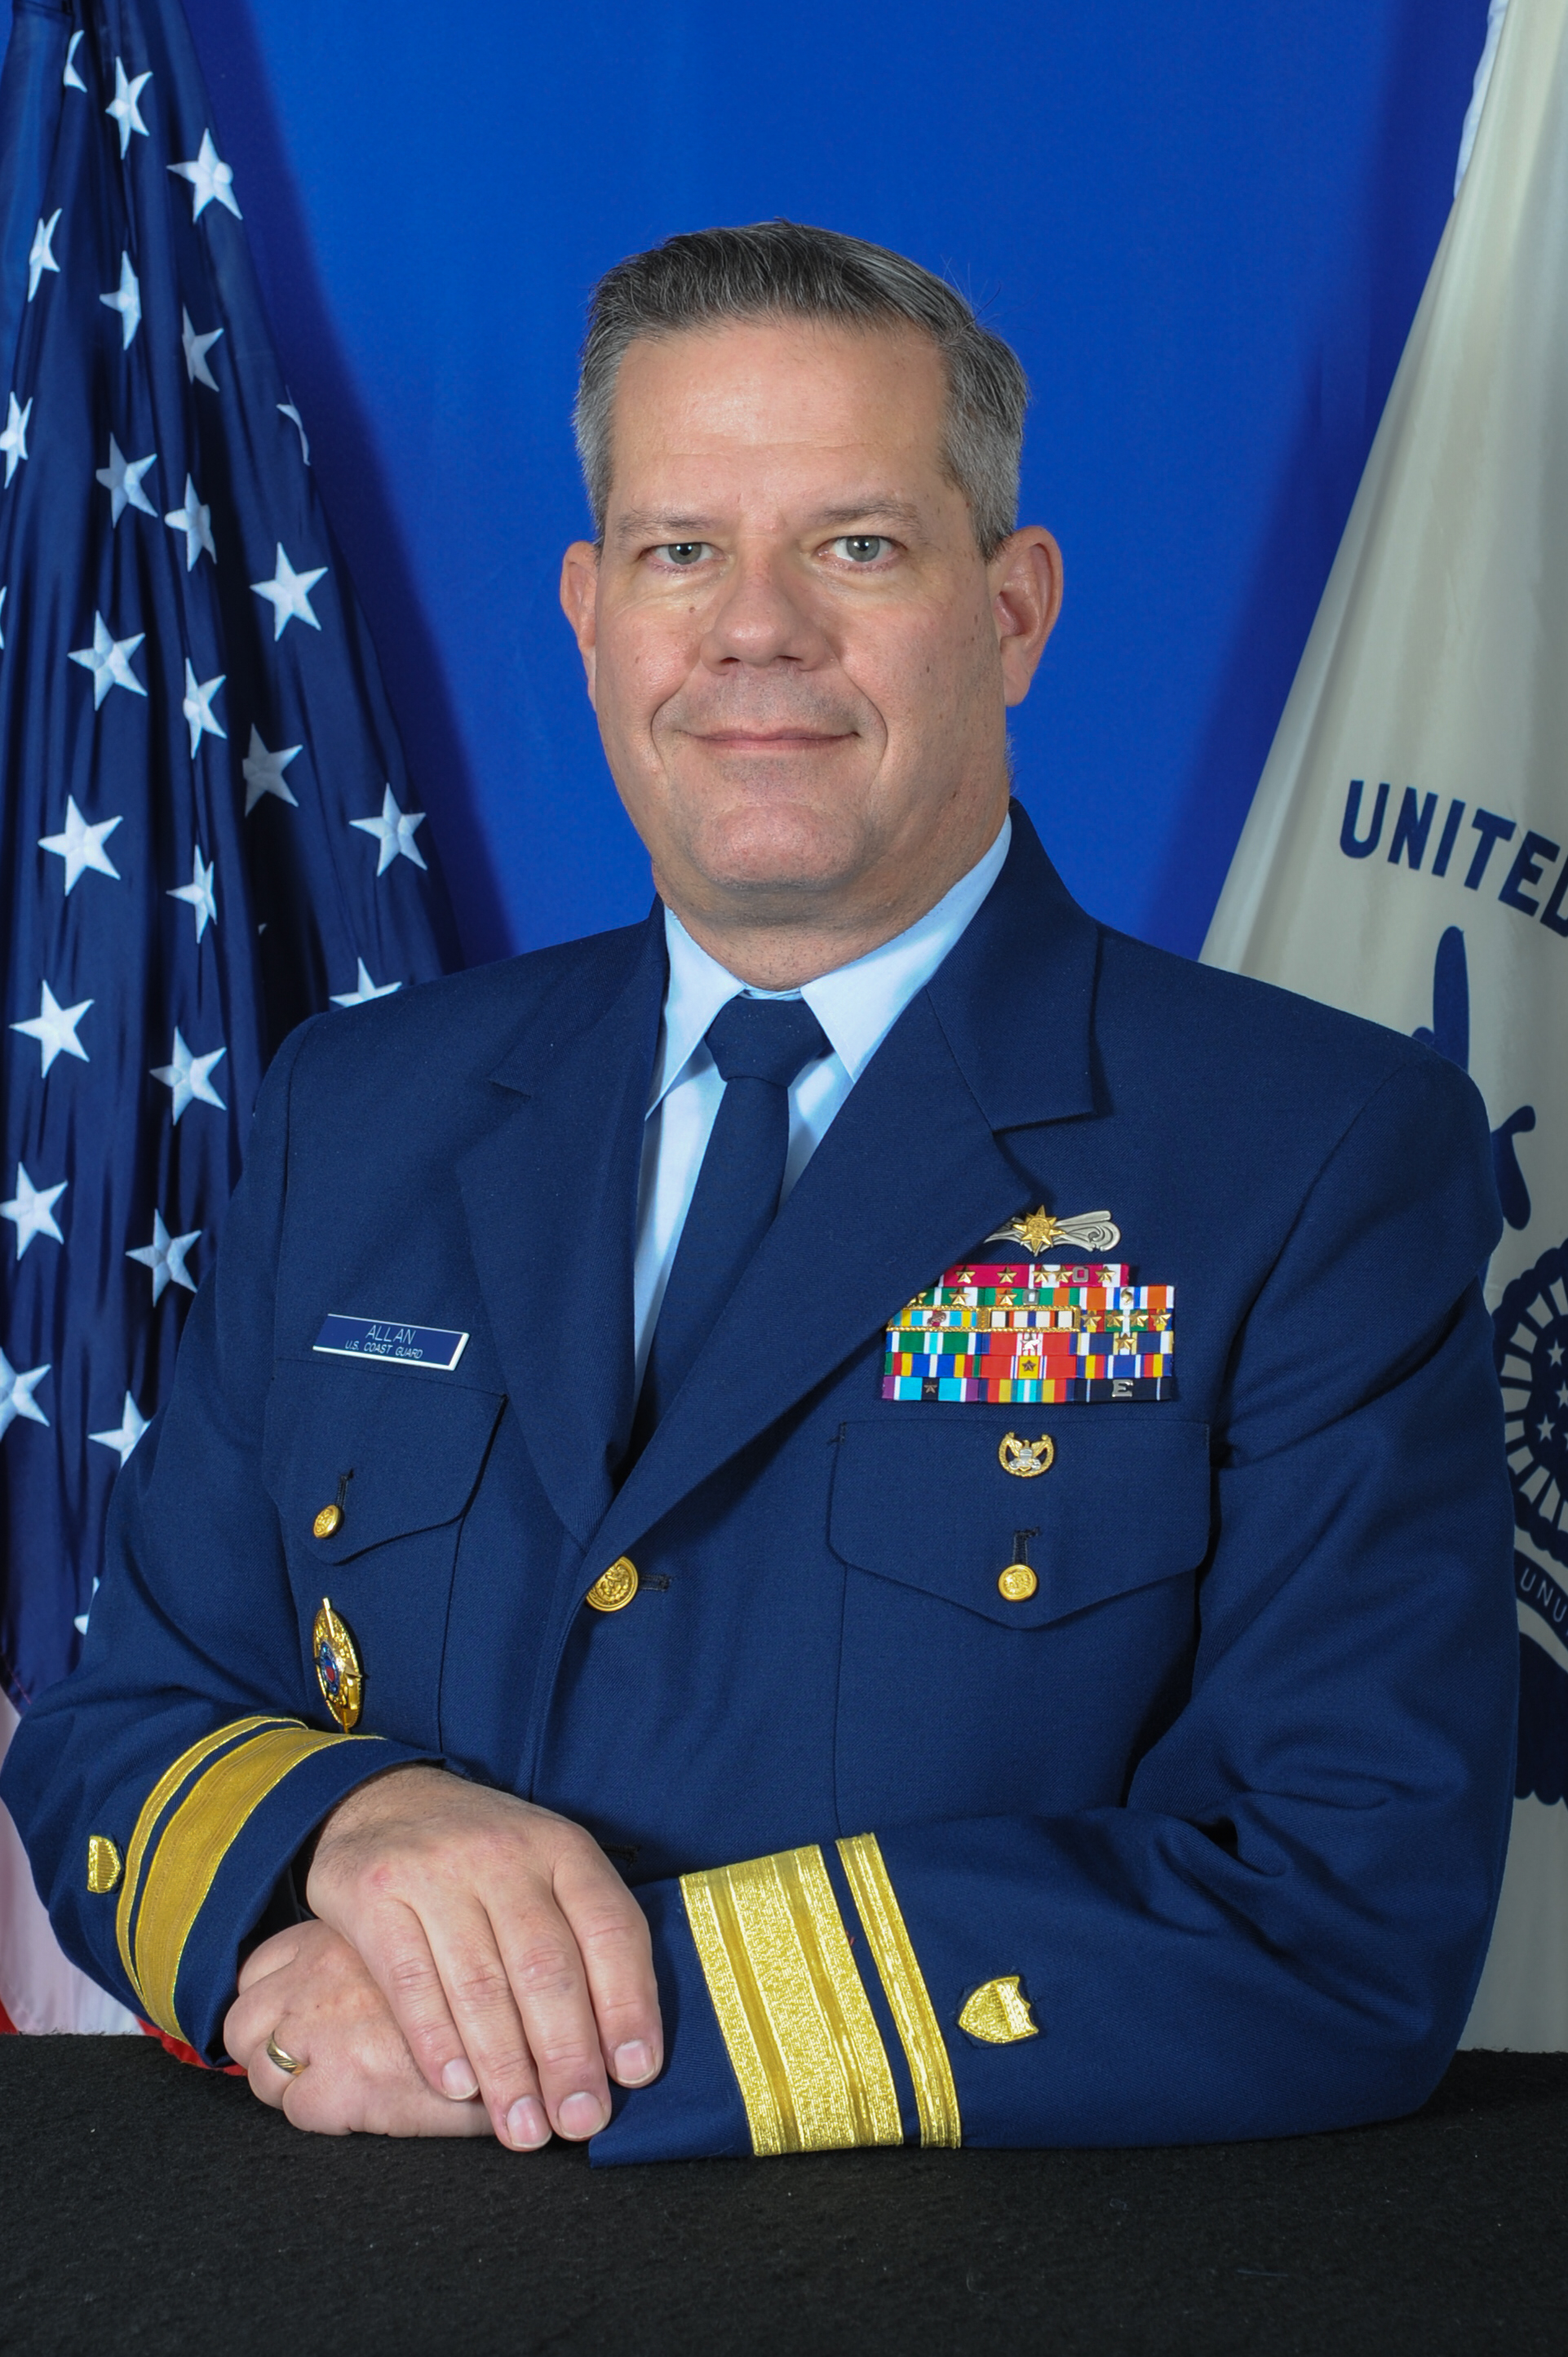 Coast Guard Rear Adm. Steven D. Poulin, Director J3